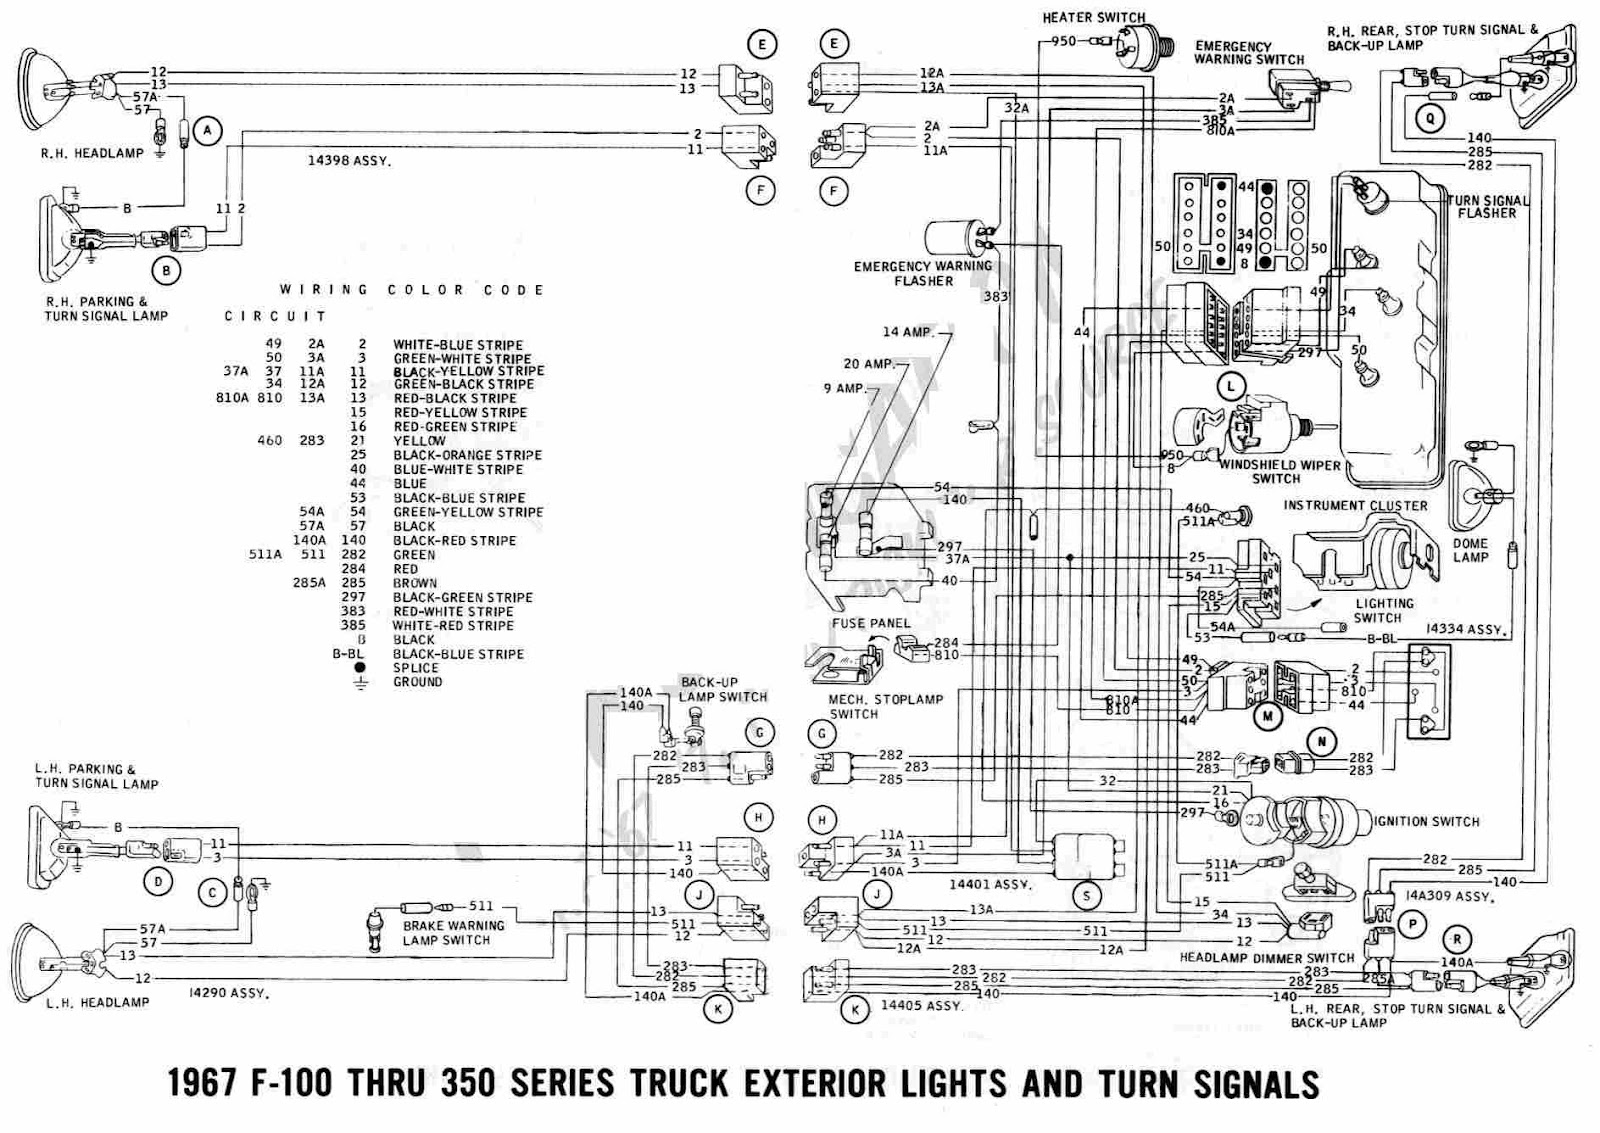 Freightliner Wiring Diagrams 2 In M2 Diagram Best Of 2006 With Chassis additionally International 4300 Air Conditioning Wiring Diagram additionally 04 Mustang Fuse Box furthermore 7hdtr Hi Truck Won T Idle When Stop Cruise Control Works besides How To Read Car Wiring Diagrams. on sterling truck fuse box diagram